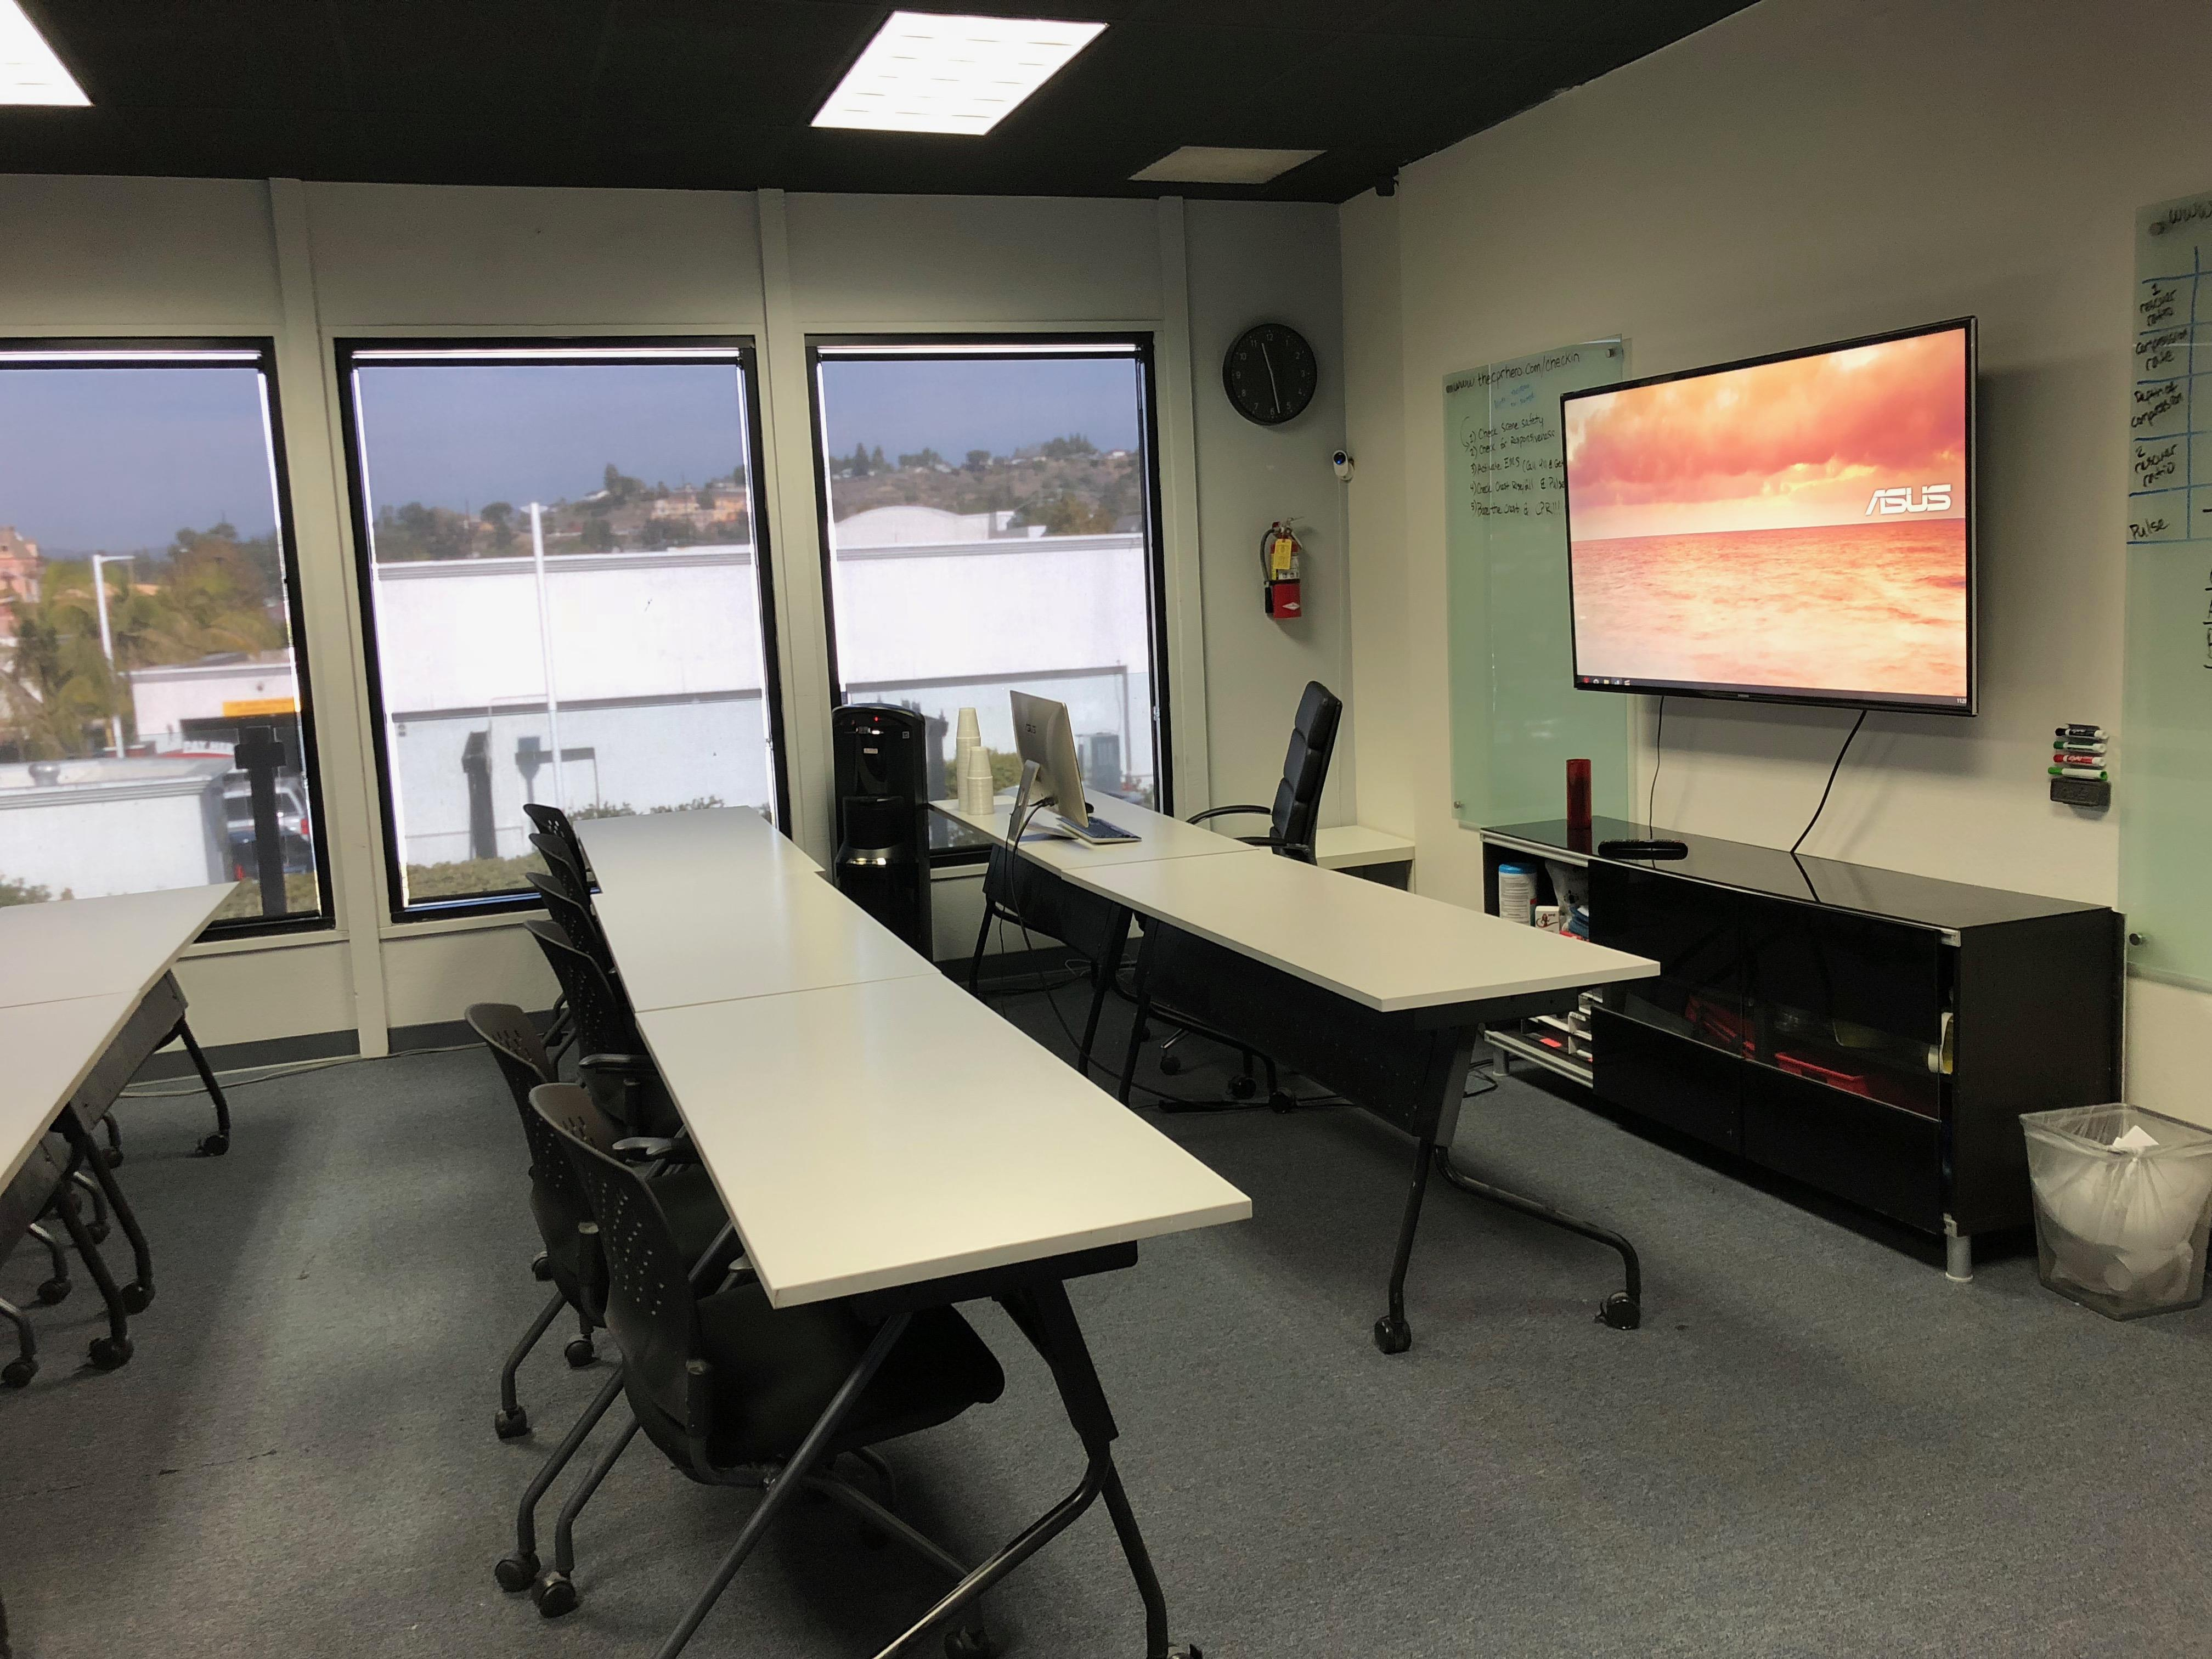 Anaheim - Classroom Conference Room Open Space